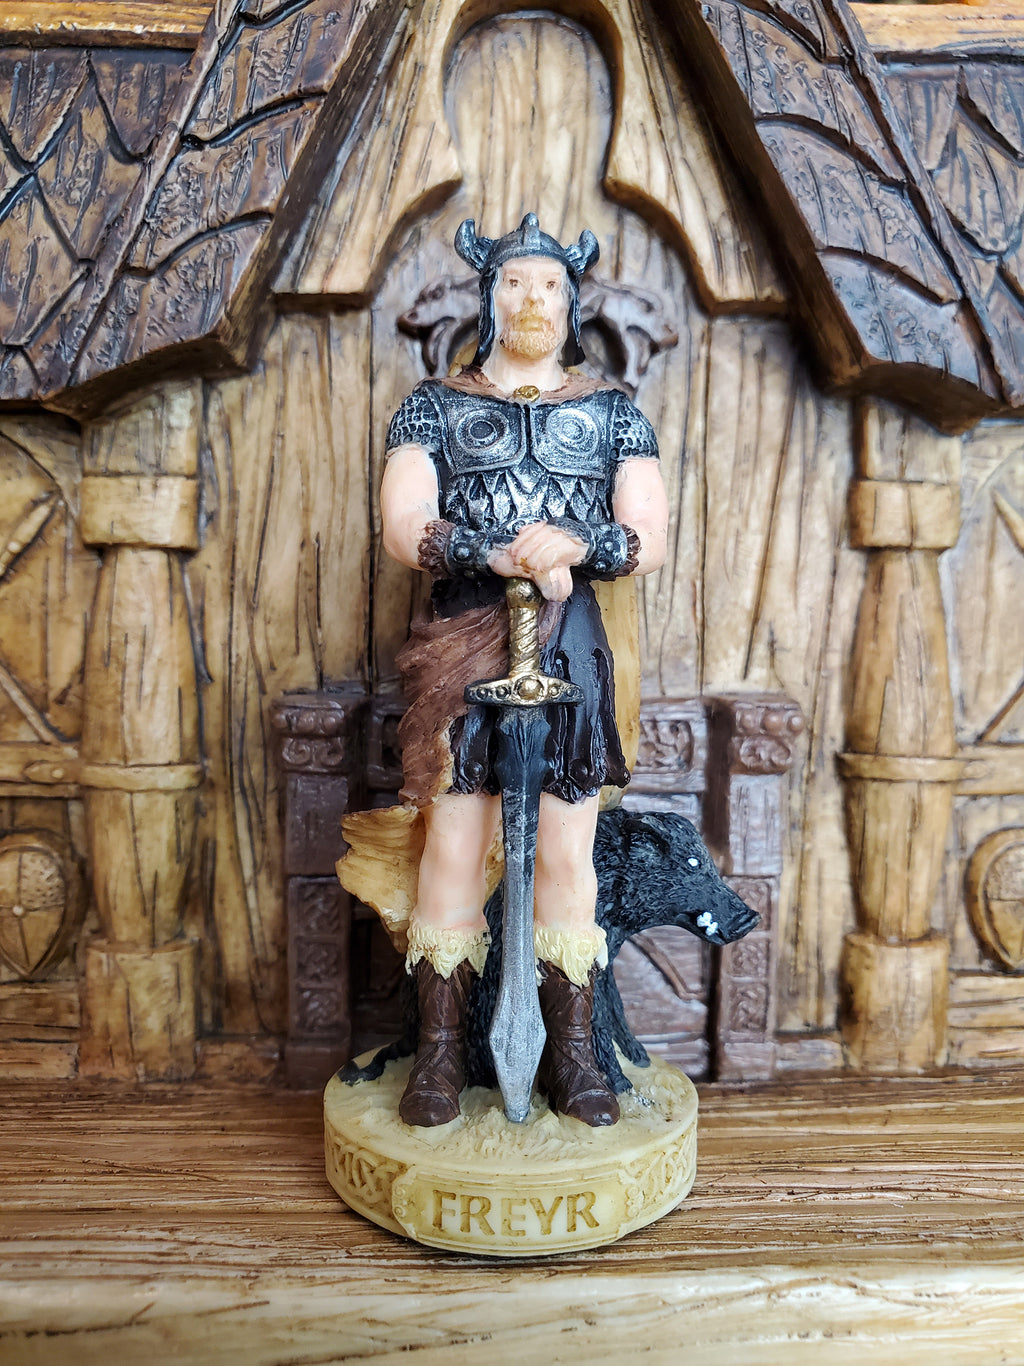 Freyr Mini Statue - Small Hand-Painted Norse God Freyr/Frey - Mini Altar Statue